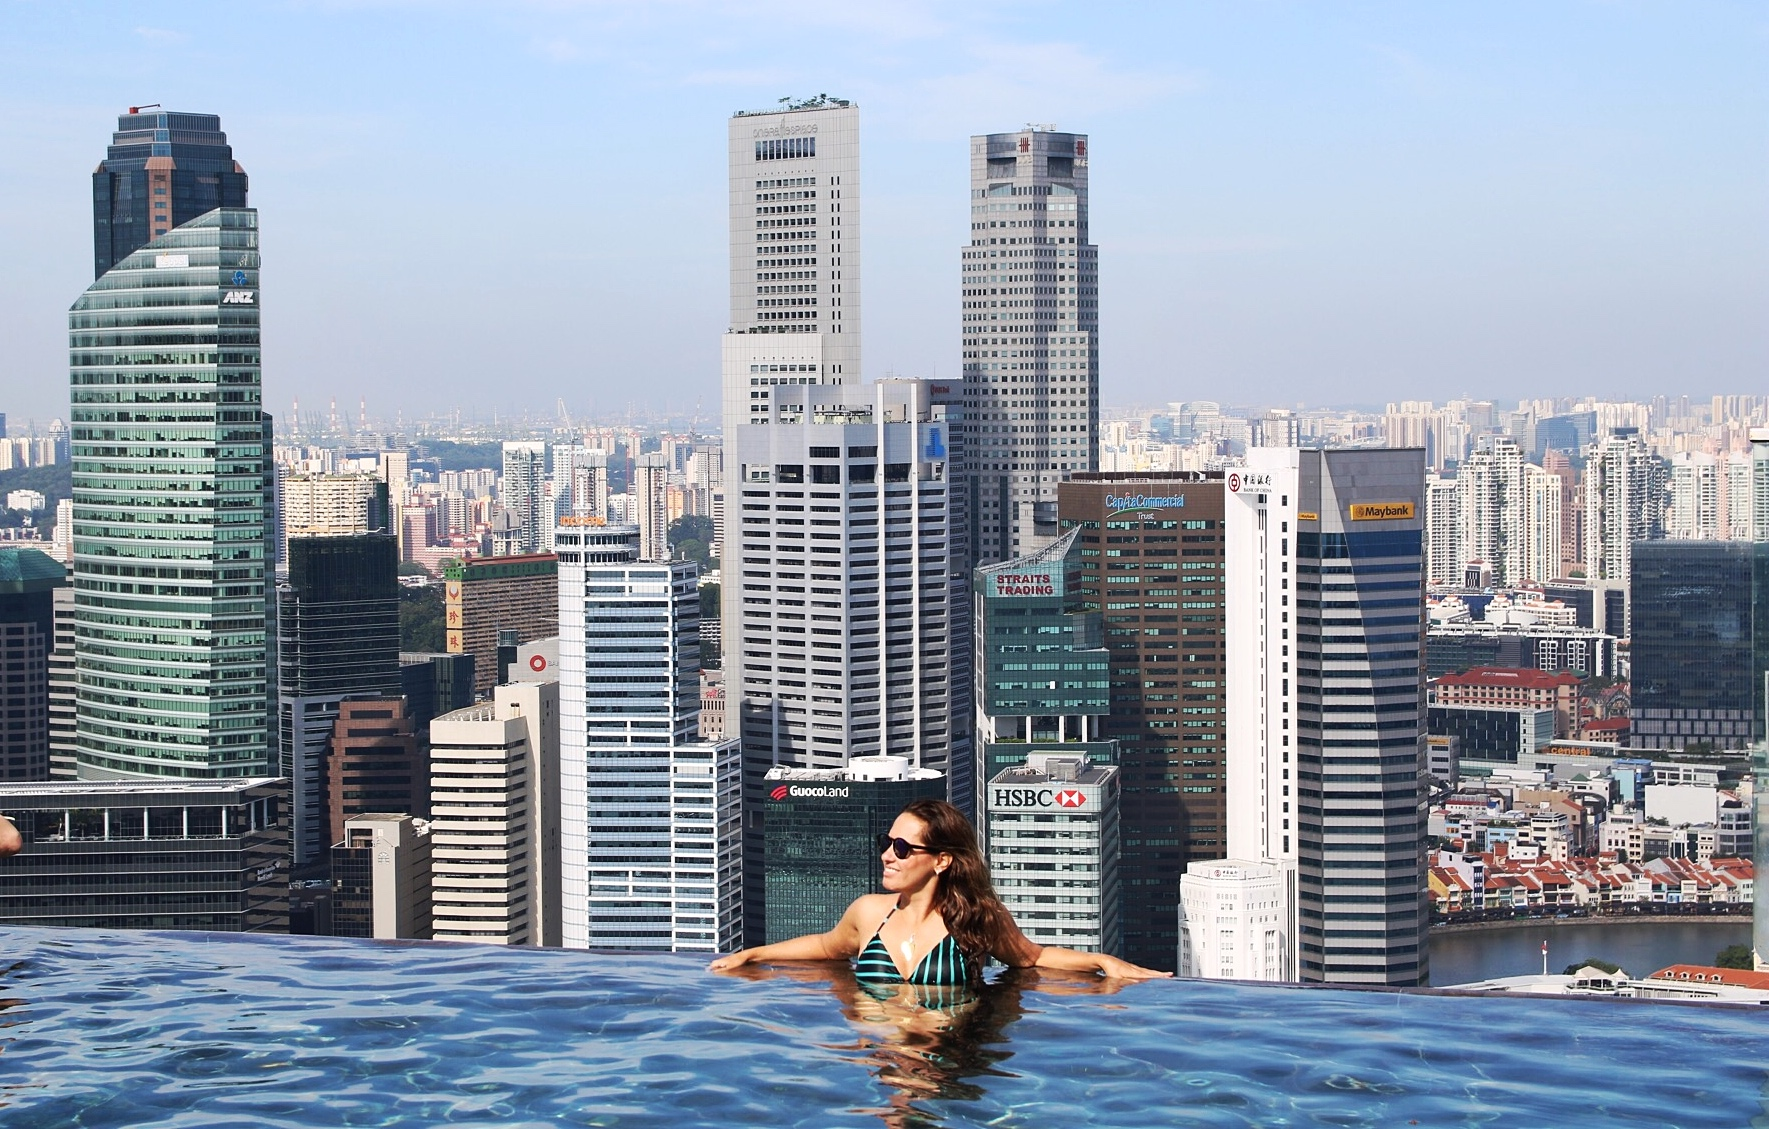 Marina bay sands review singapura viagens e outras - Marina bay sands piscina ...